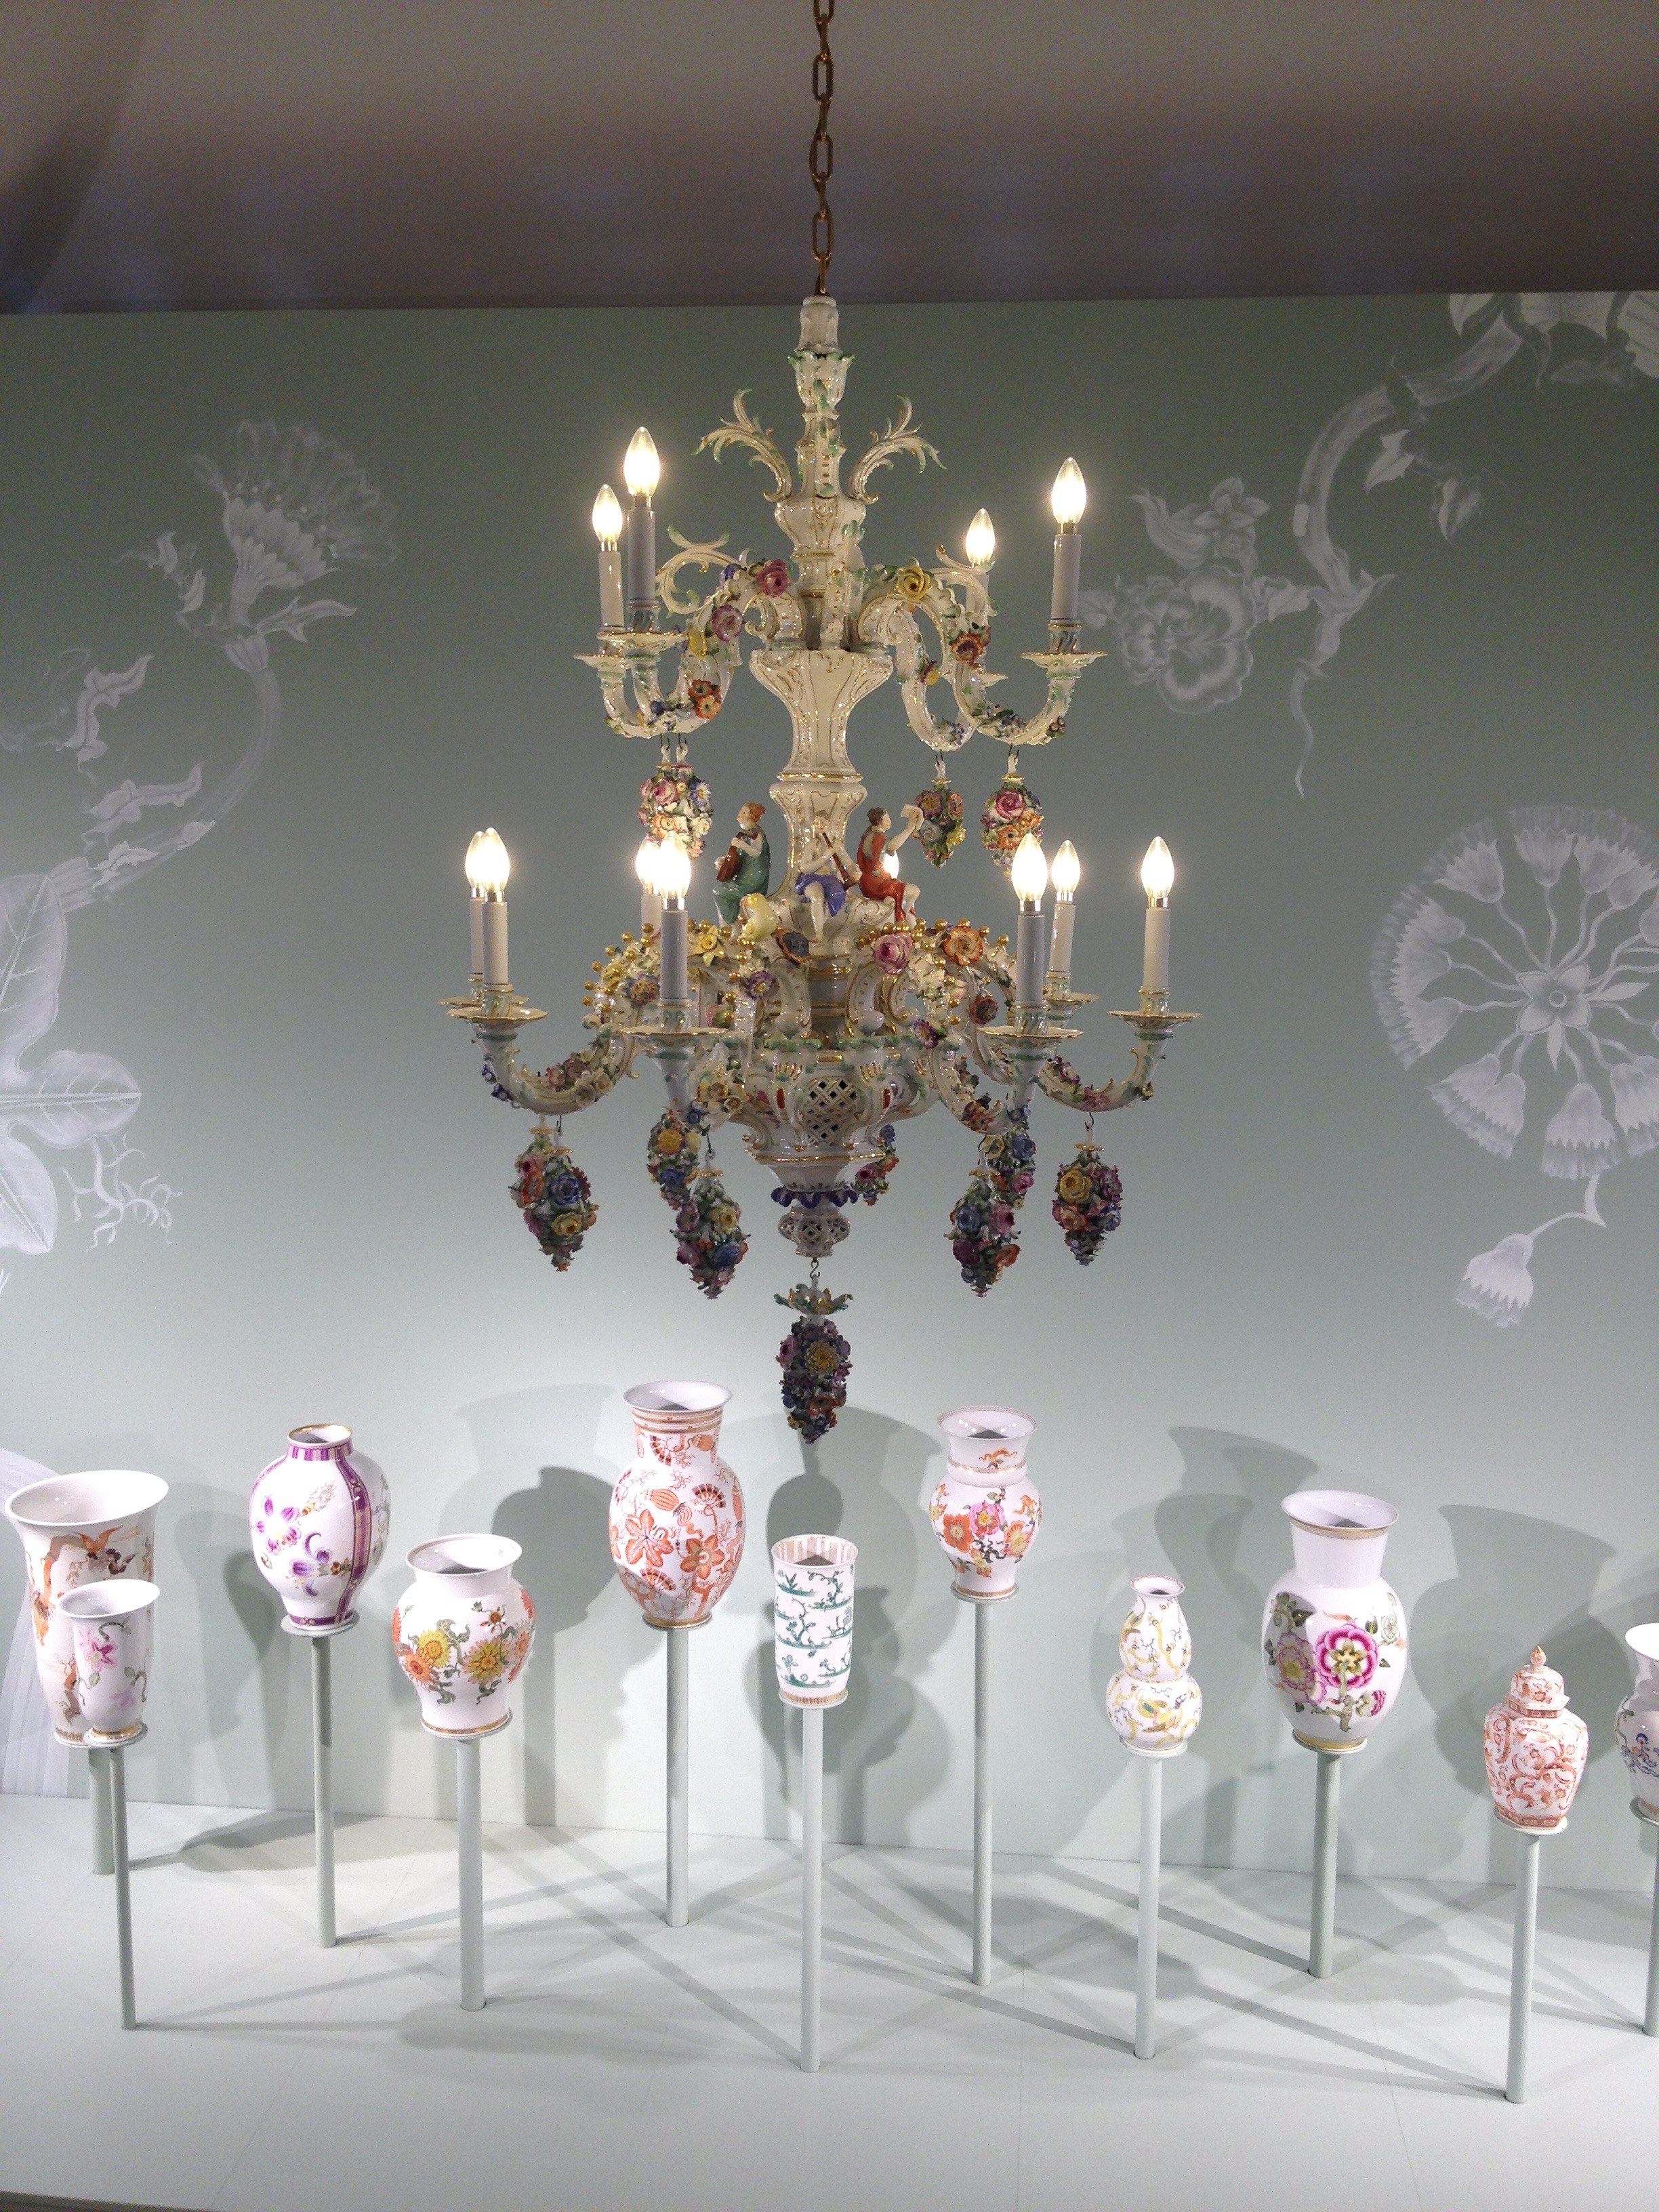 At the Meissen Porcelain Factory and Museum